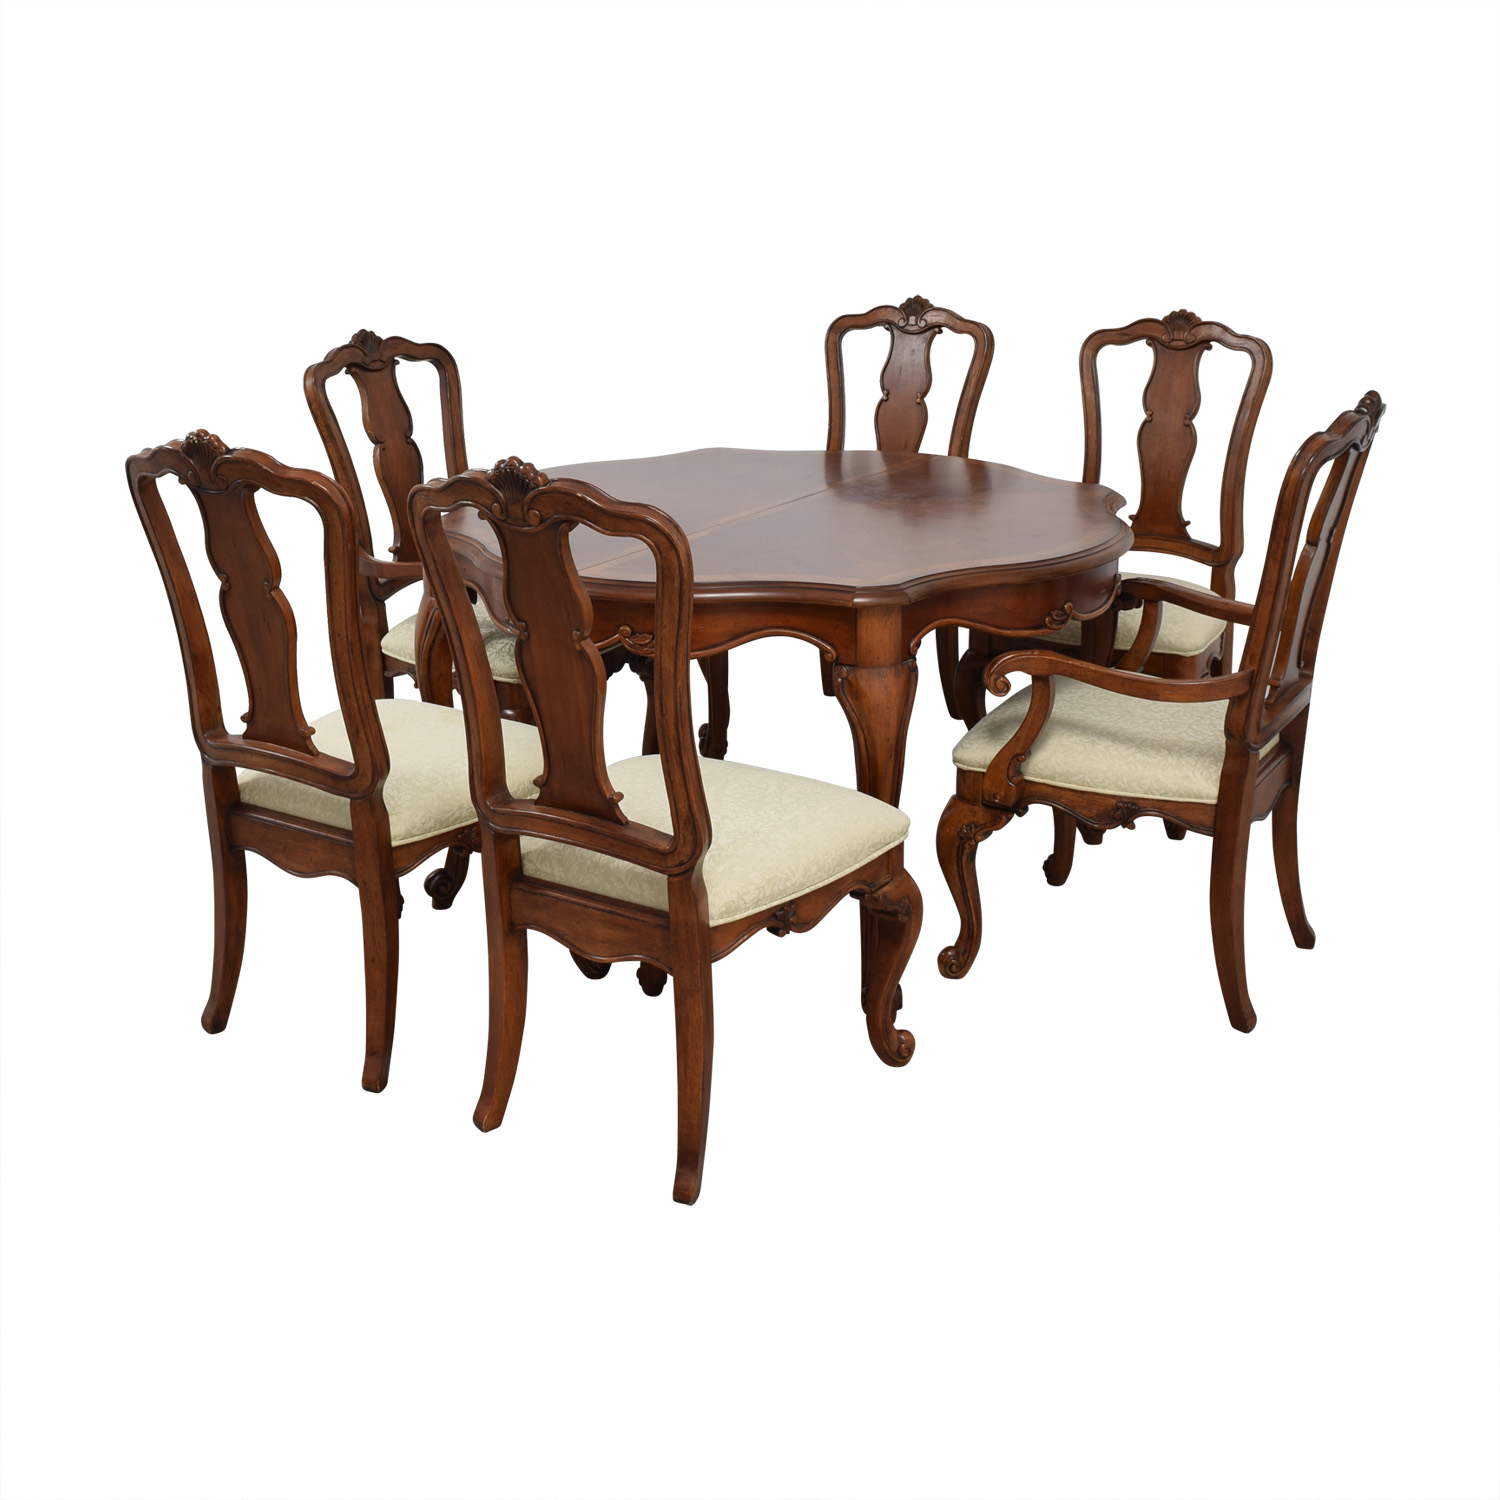 Macy's Macy's Dovetailed Wood Extendable Dining Set nyc